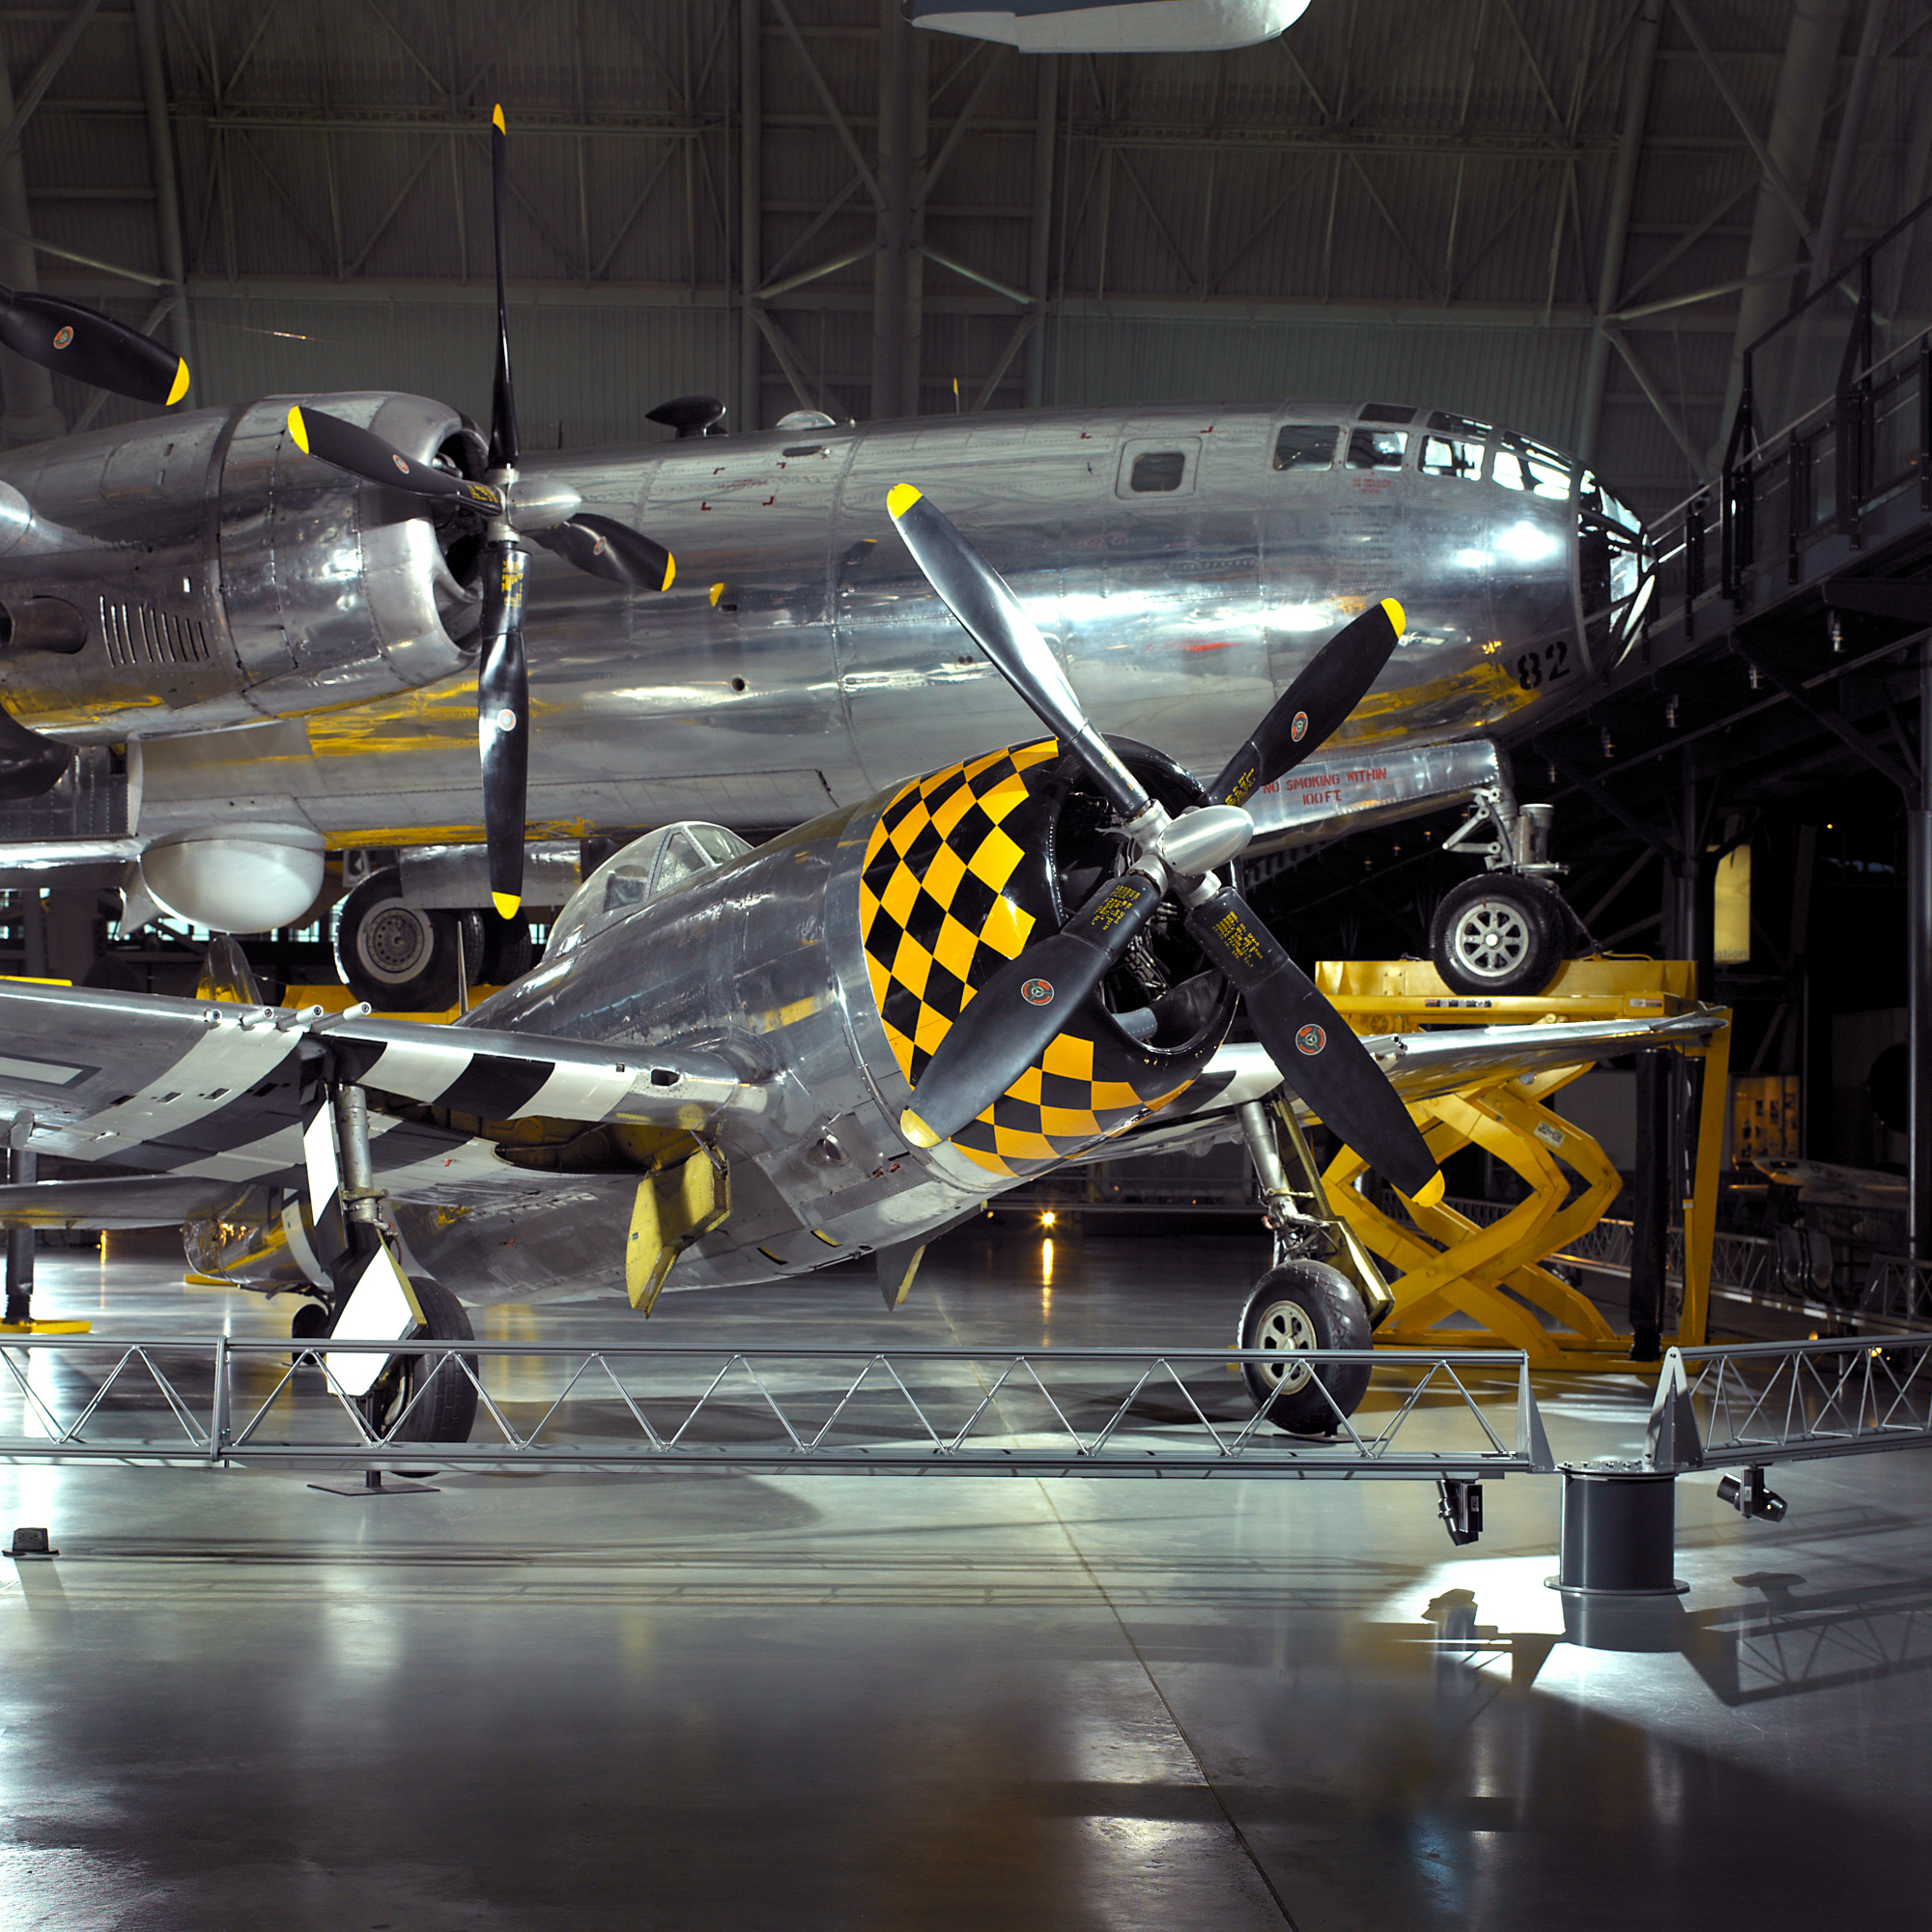 Republic P-47D Thunderbolt and Boeing B-29 Superfortress Enola Gay